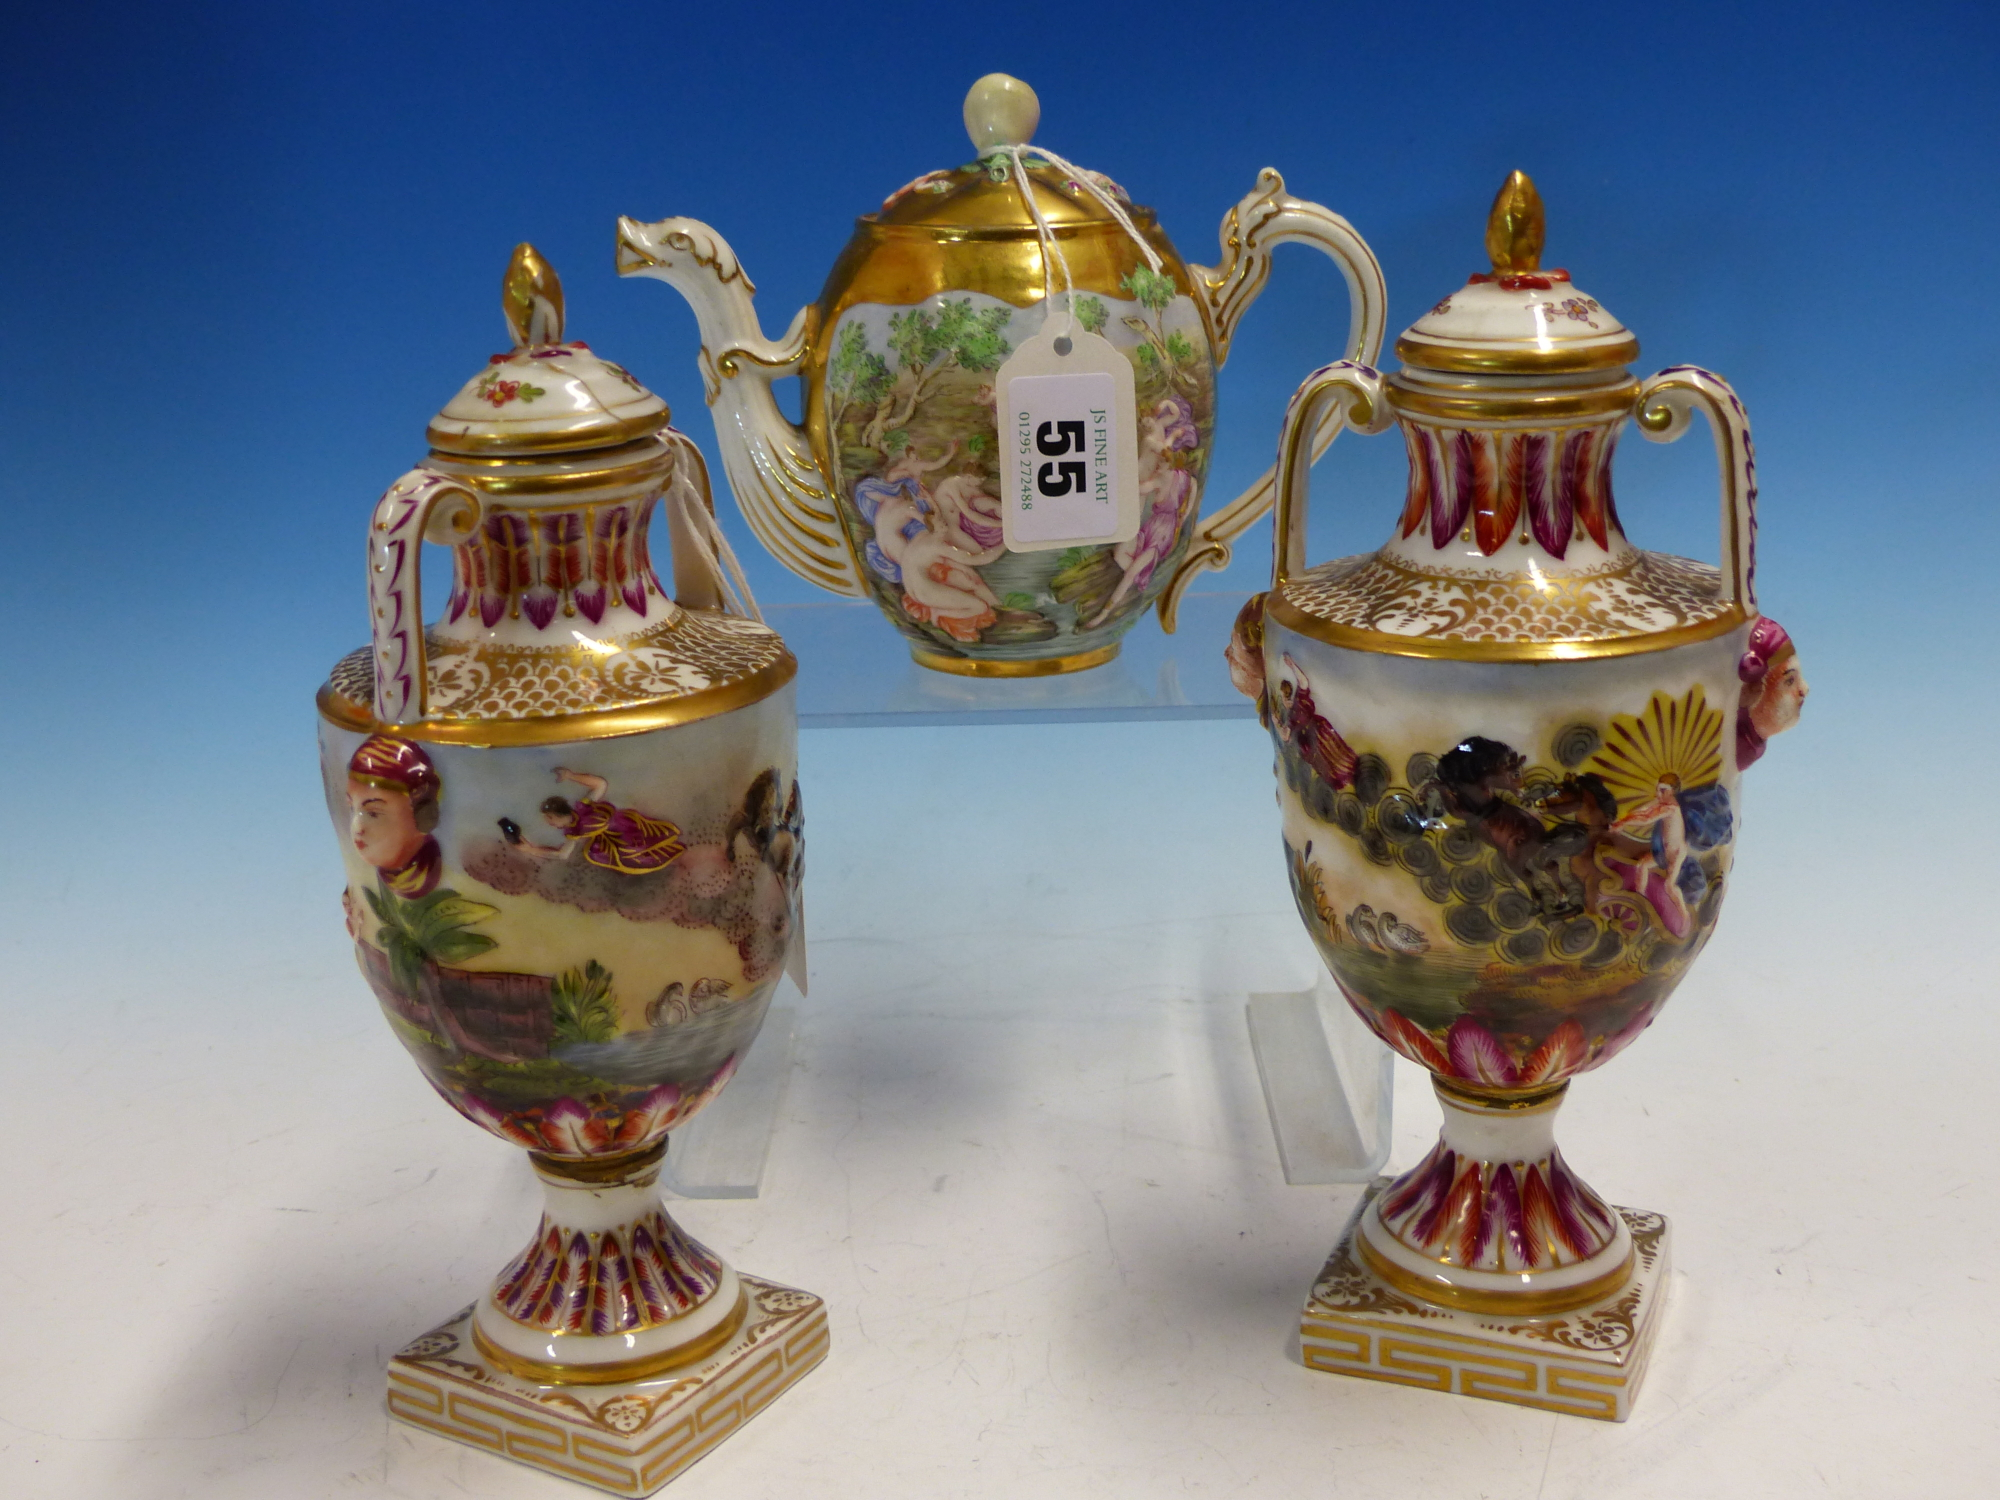 Lot 55 - A PAIR OF CAPODIMONTE COVERED TWO HANDLED BALUSTER VASES MOULDED AND PAINTED WITH CLASSICAL FIGURES.